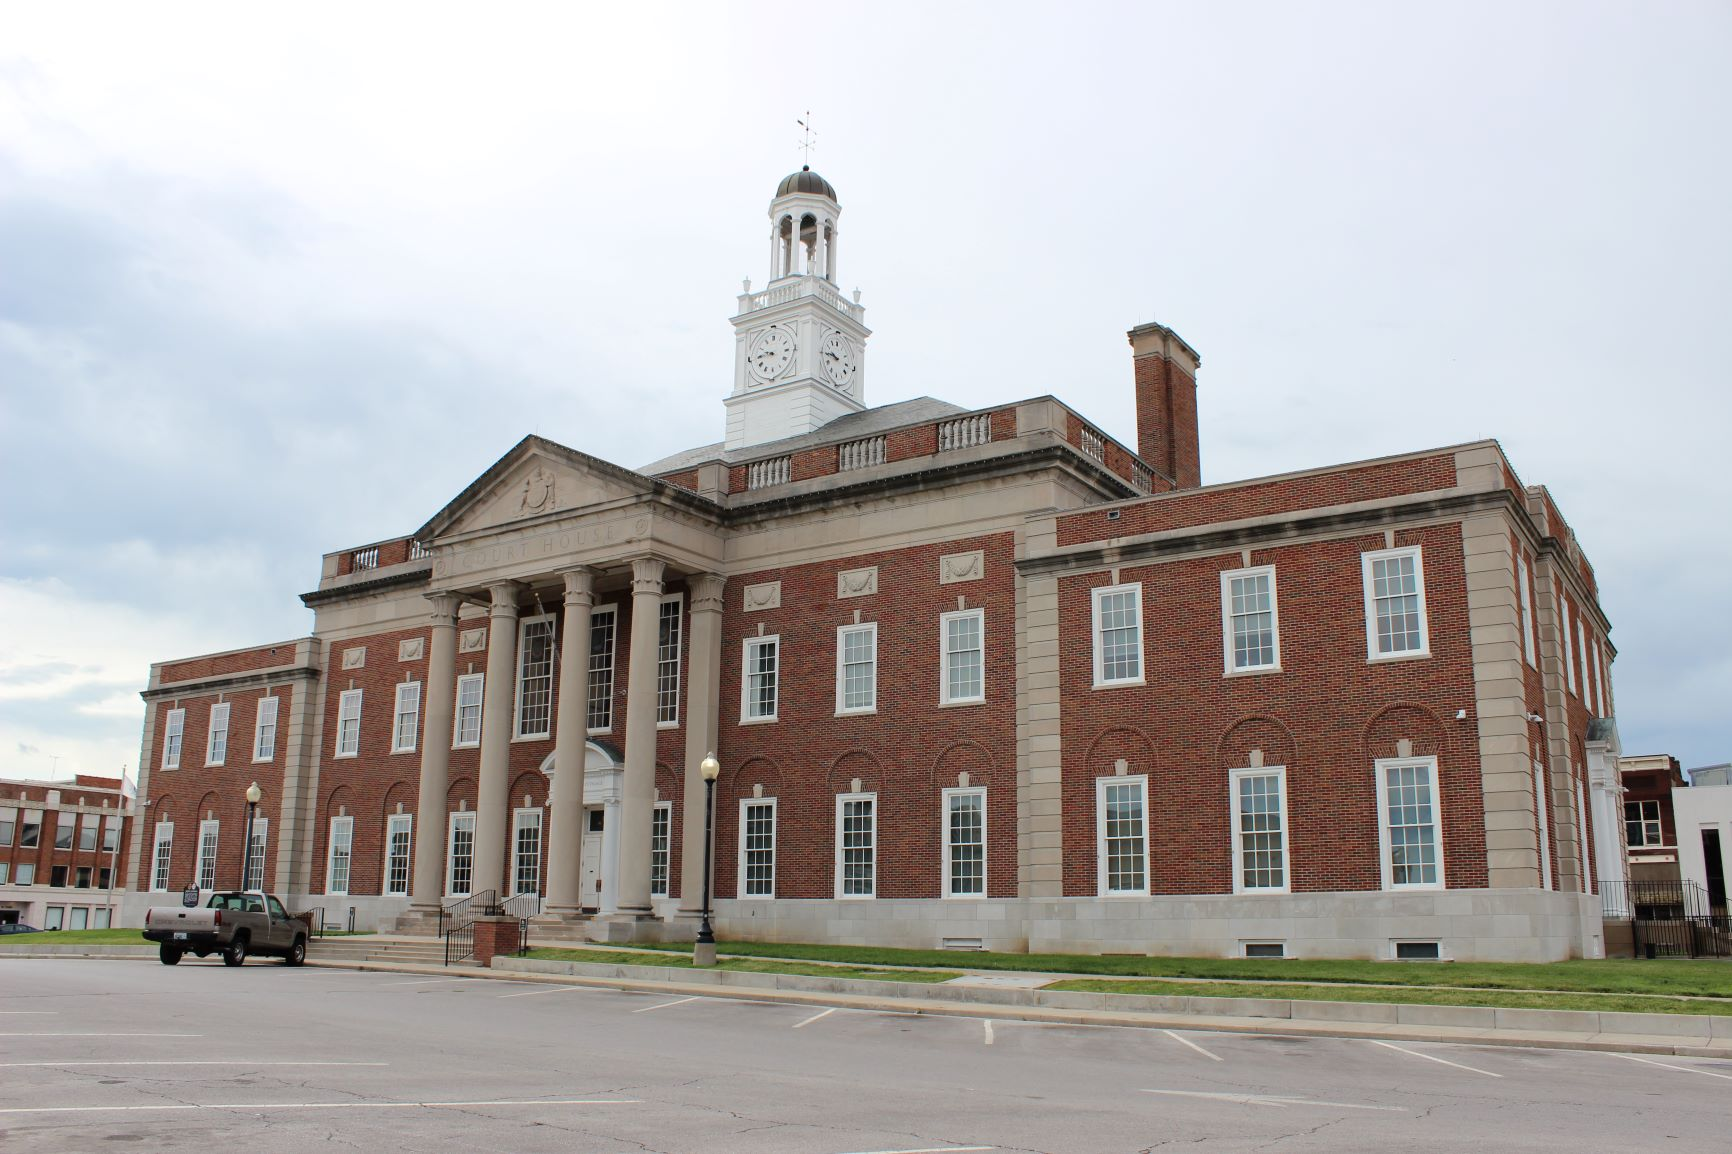 Historic Truman Courthouse